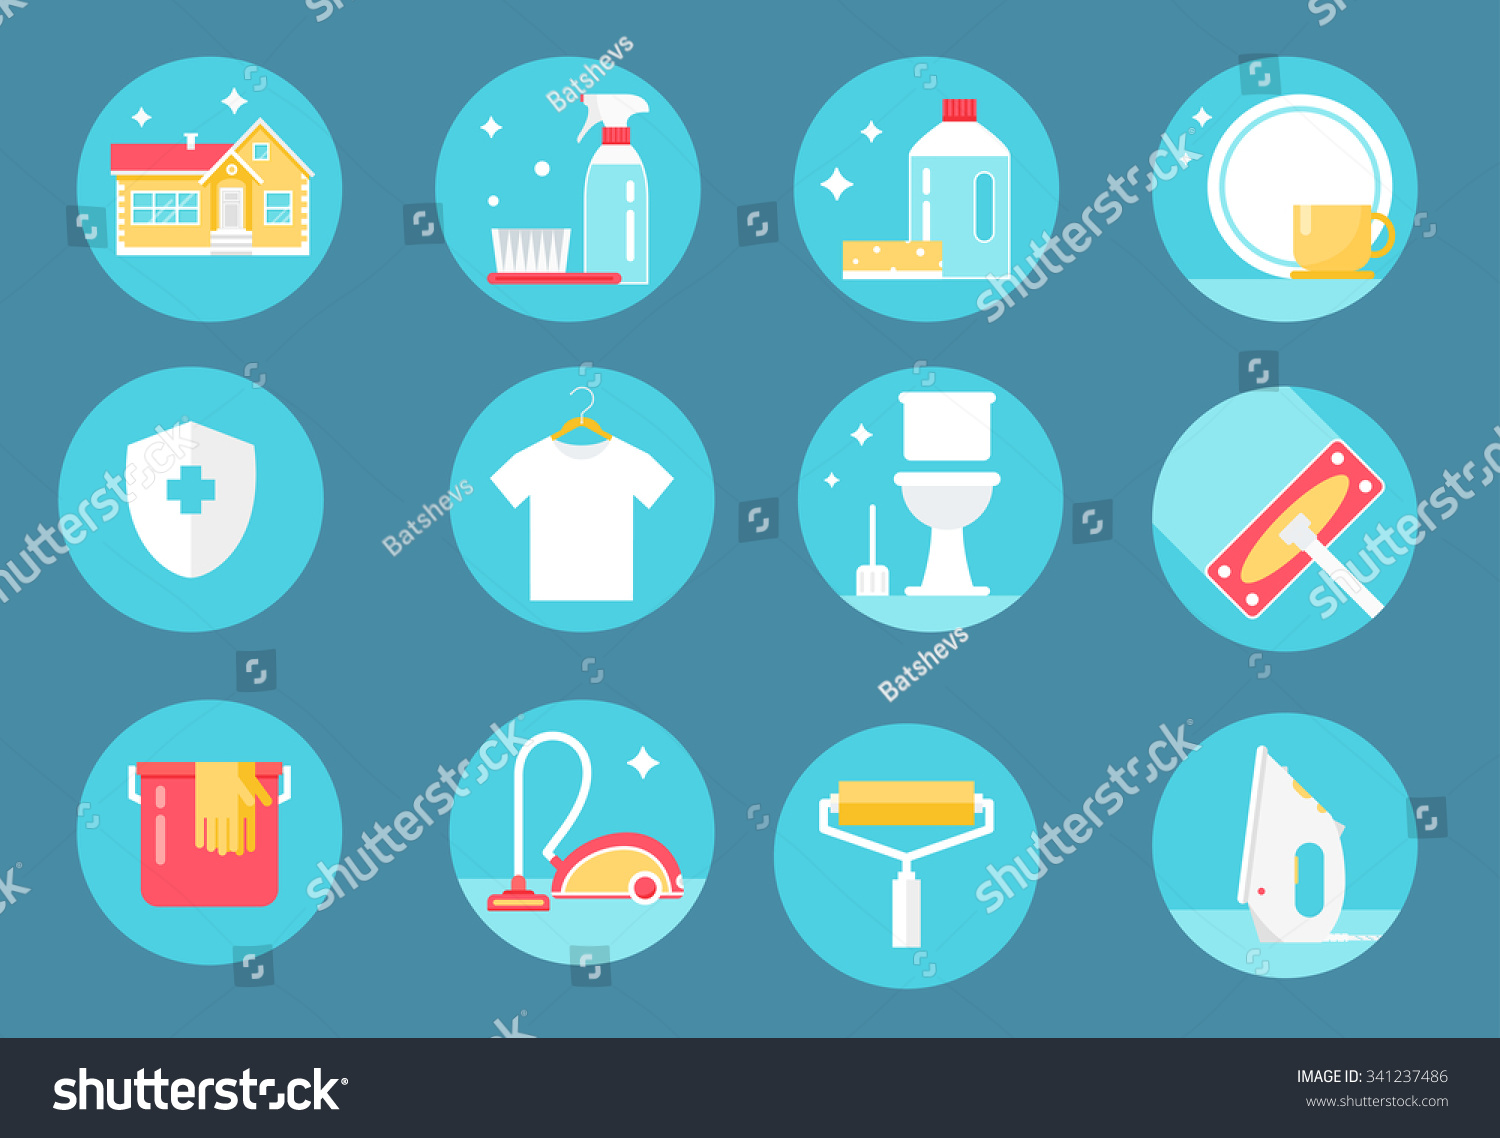 Home Cleaning Service Agents and Tools Round Icons Set Flat Design